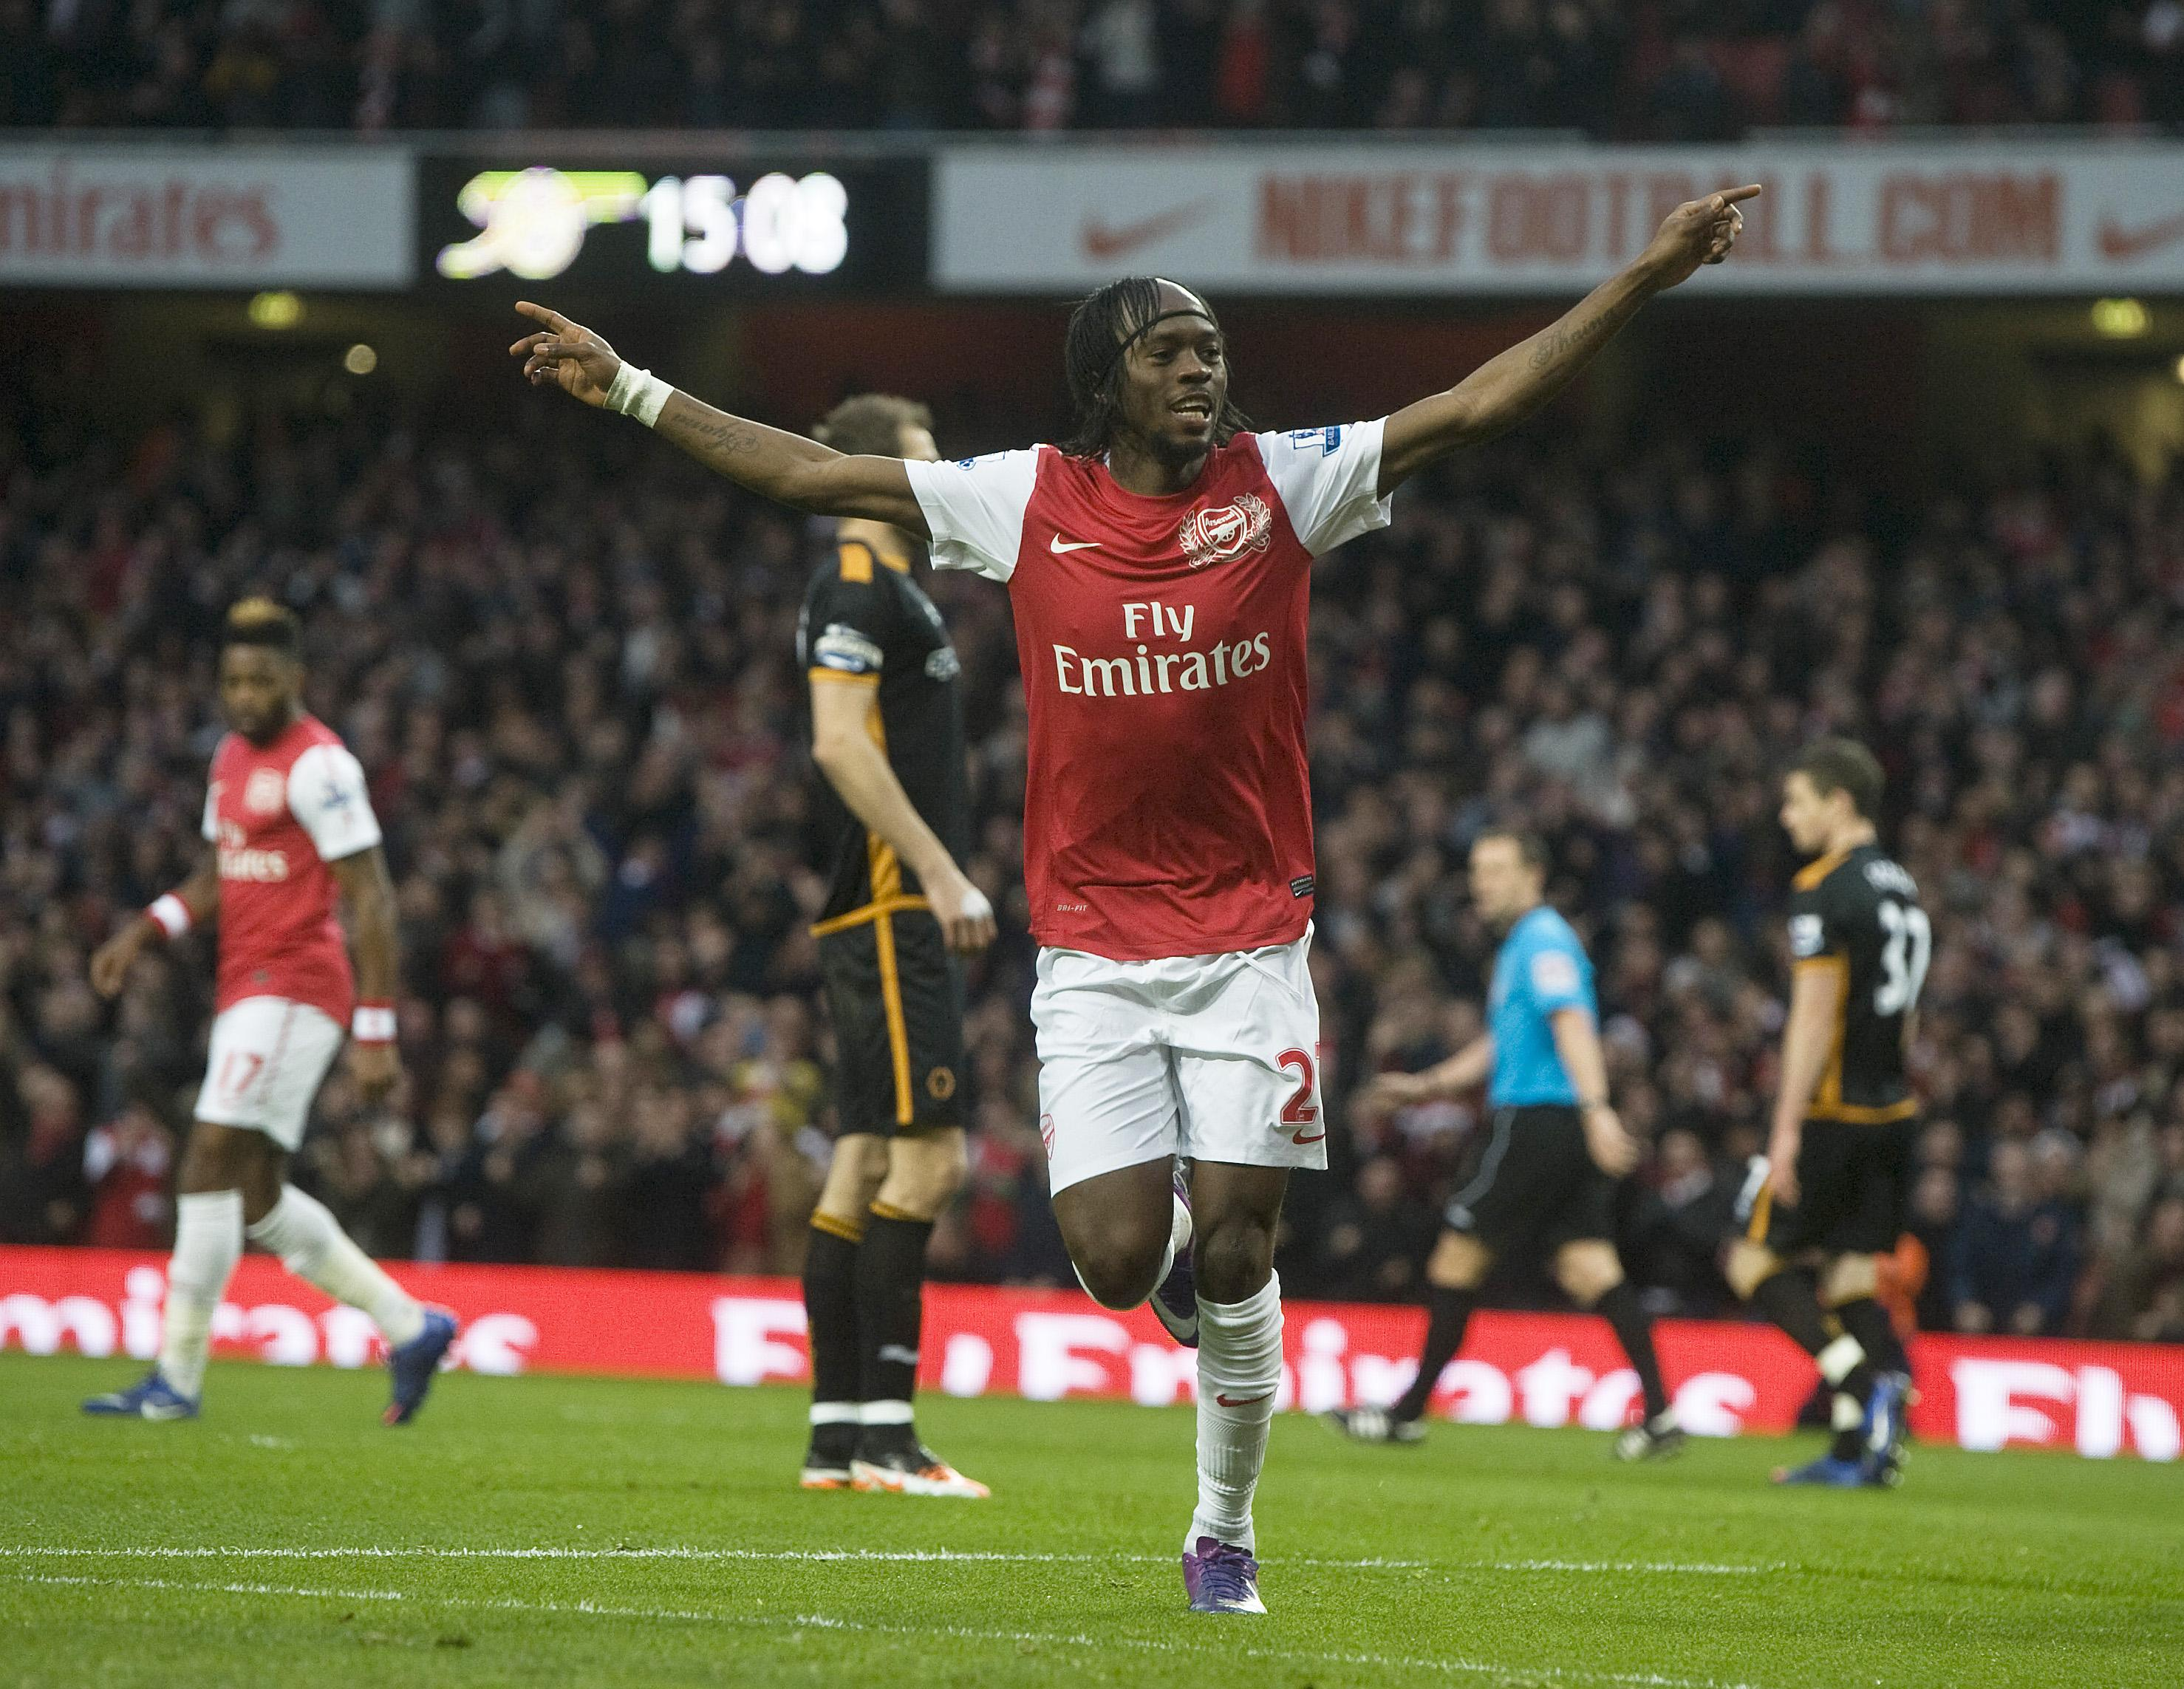 The man got top four with Gervinho on the wing FFS